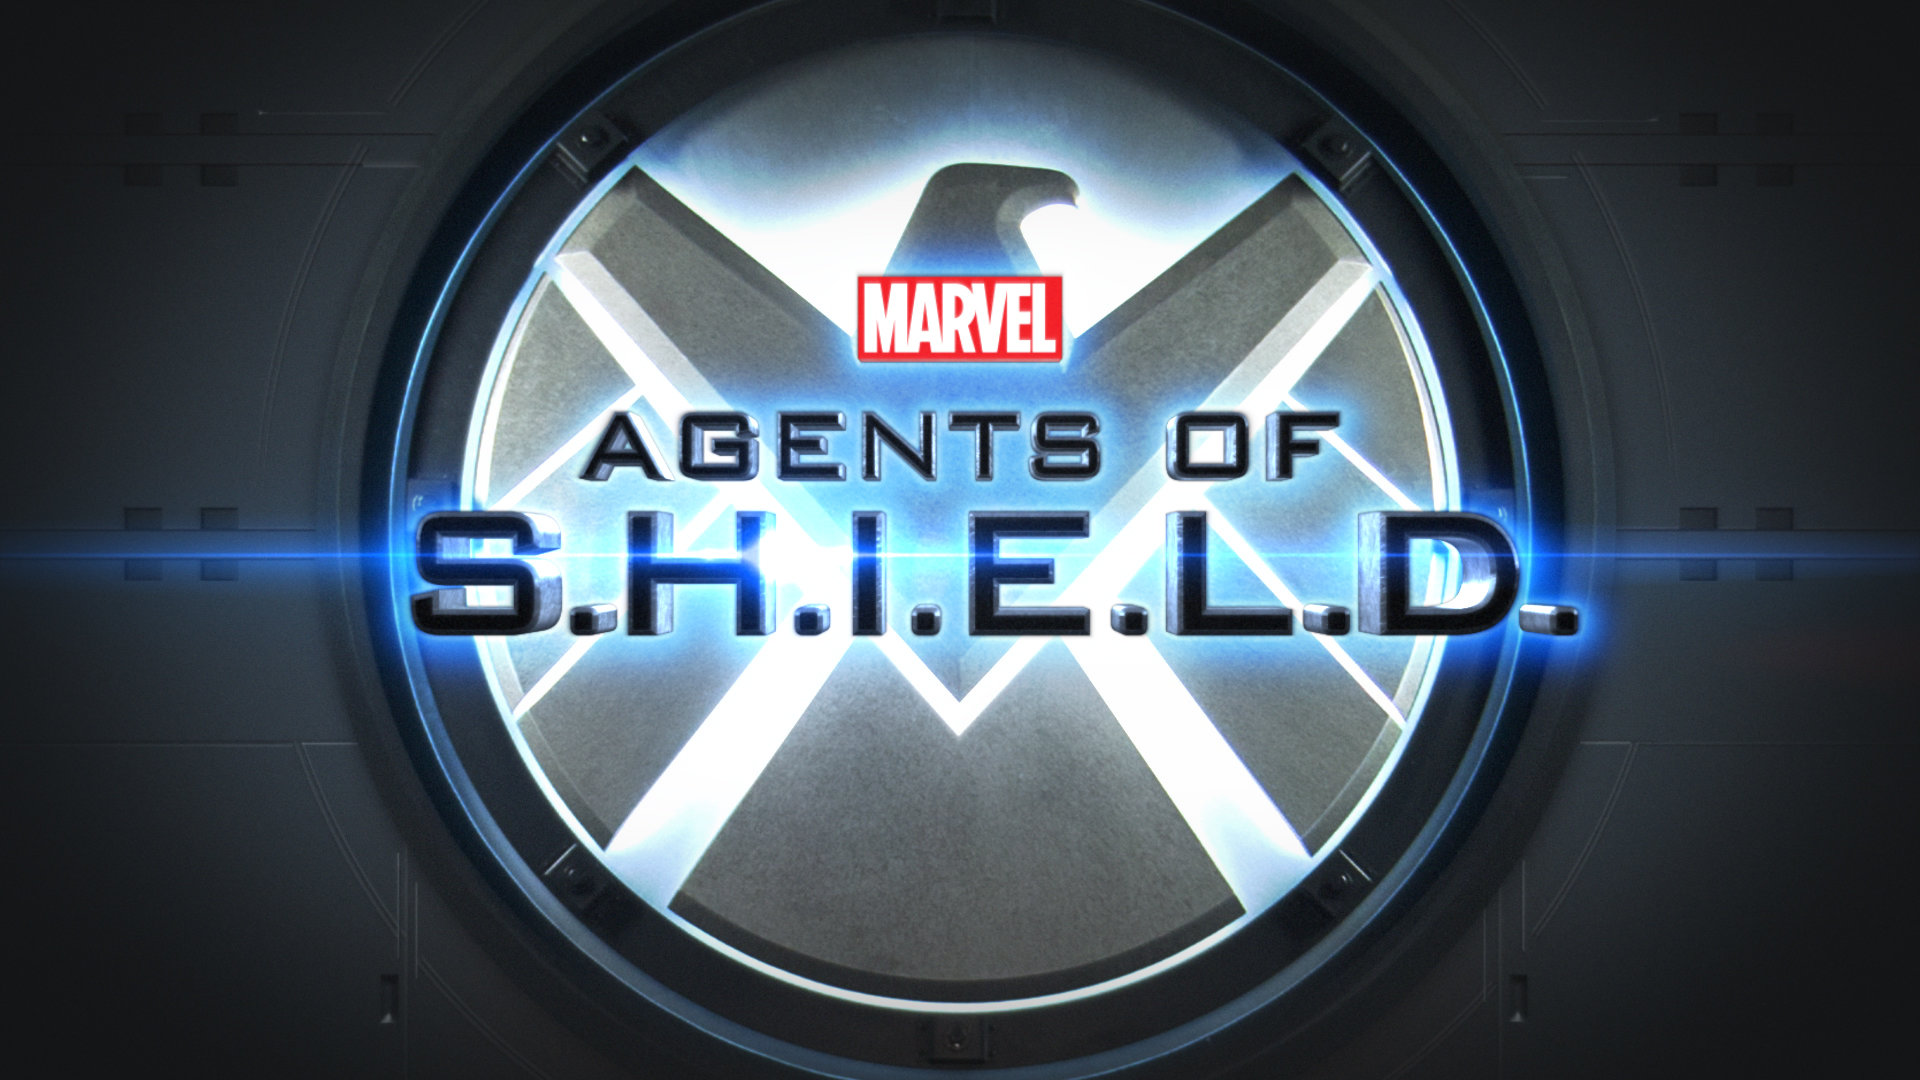 Disney abc marvel agent of shield